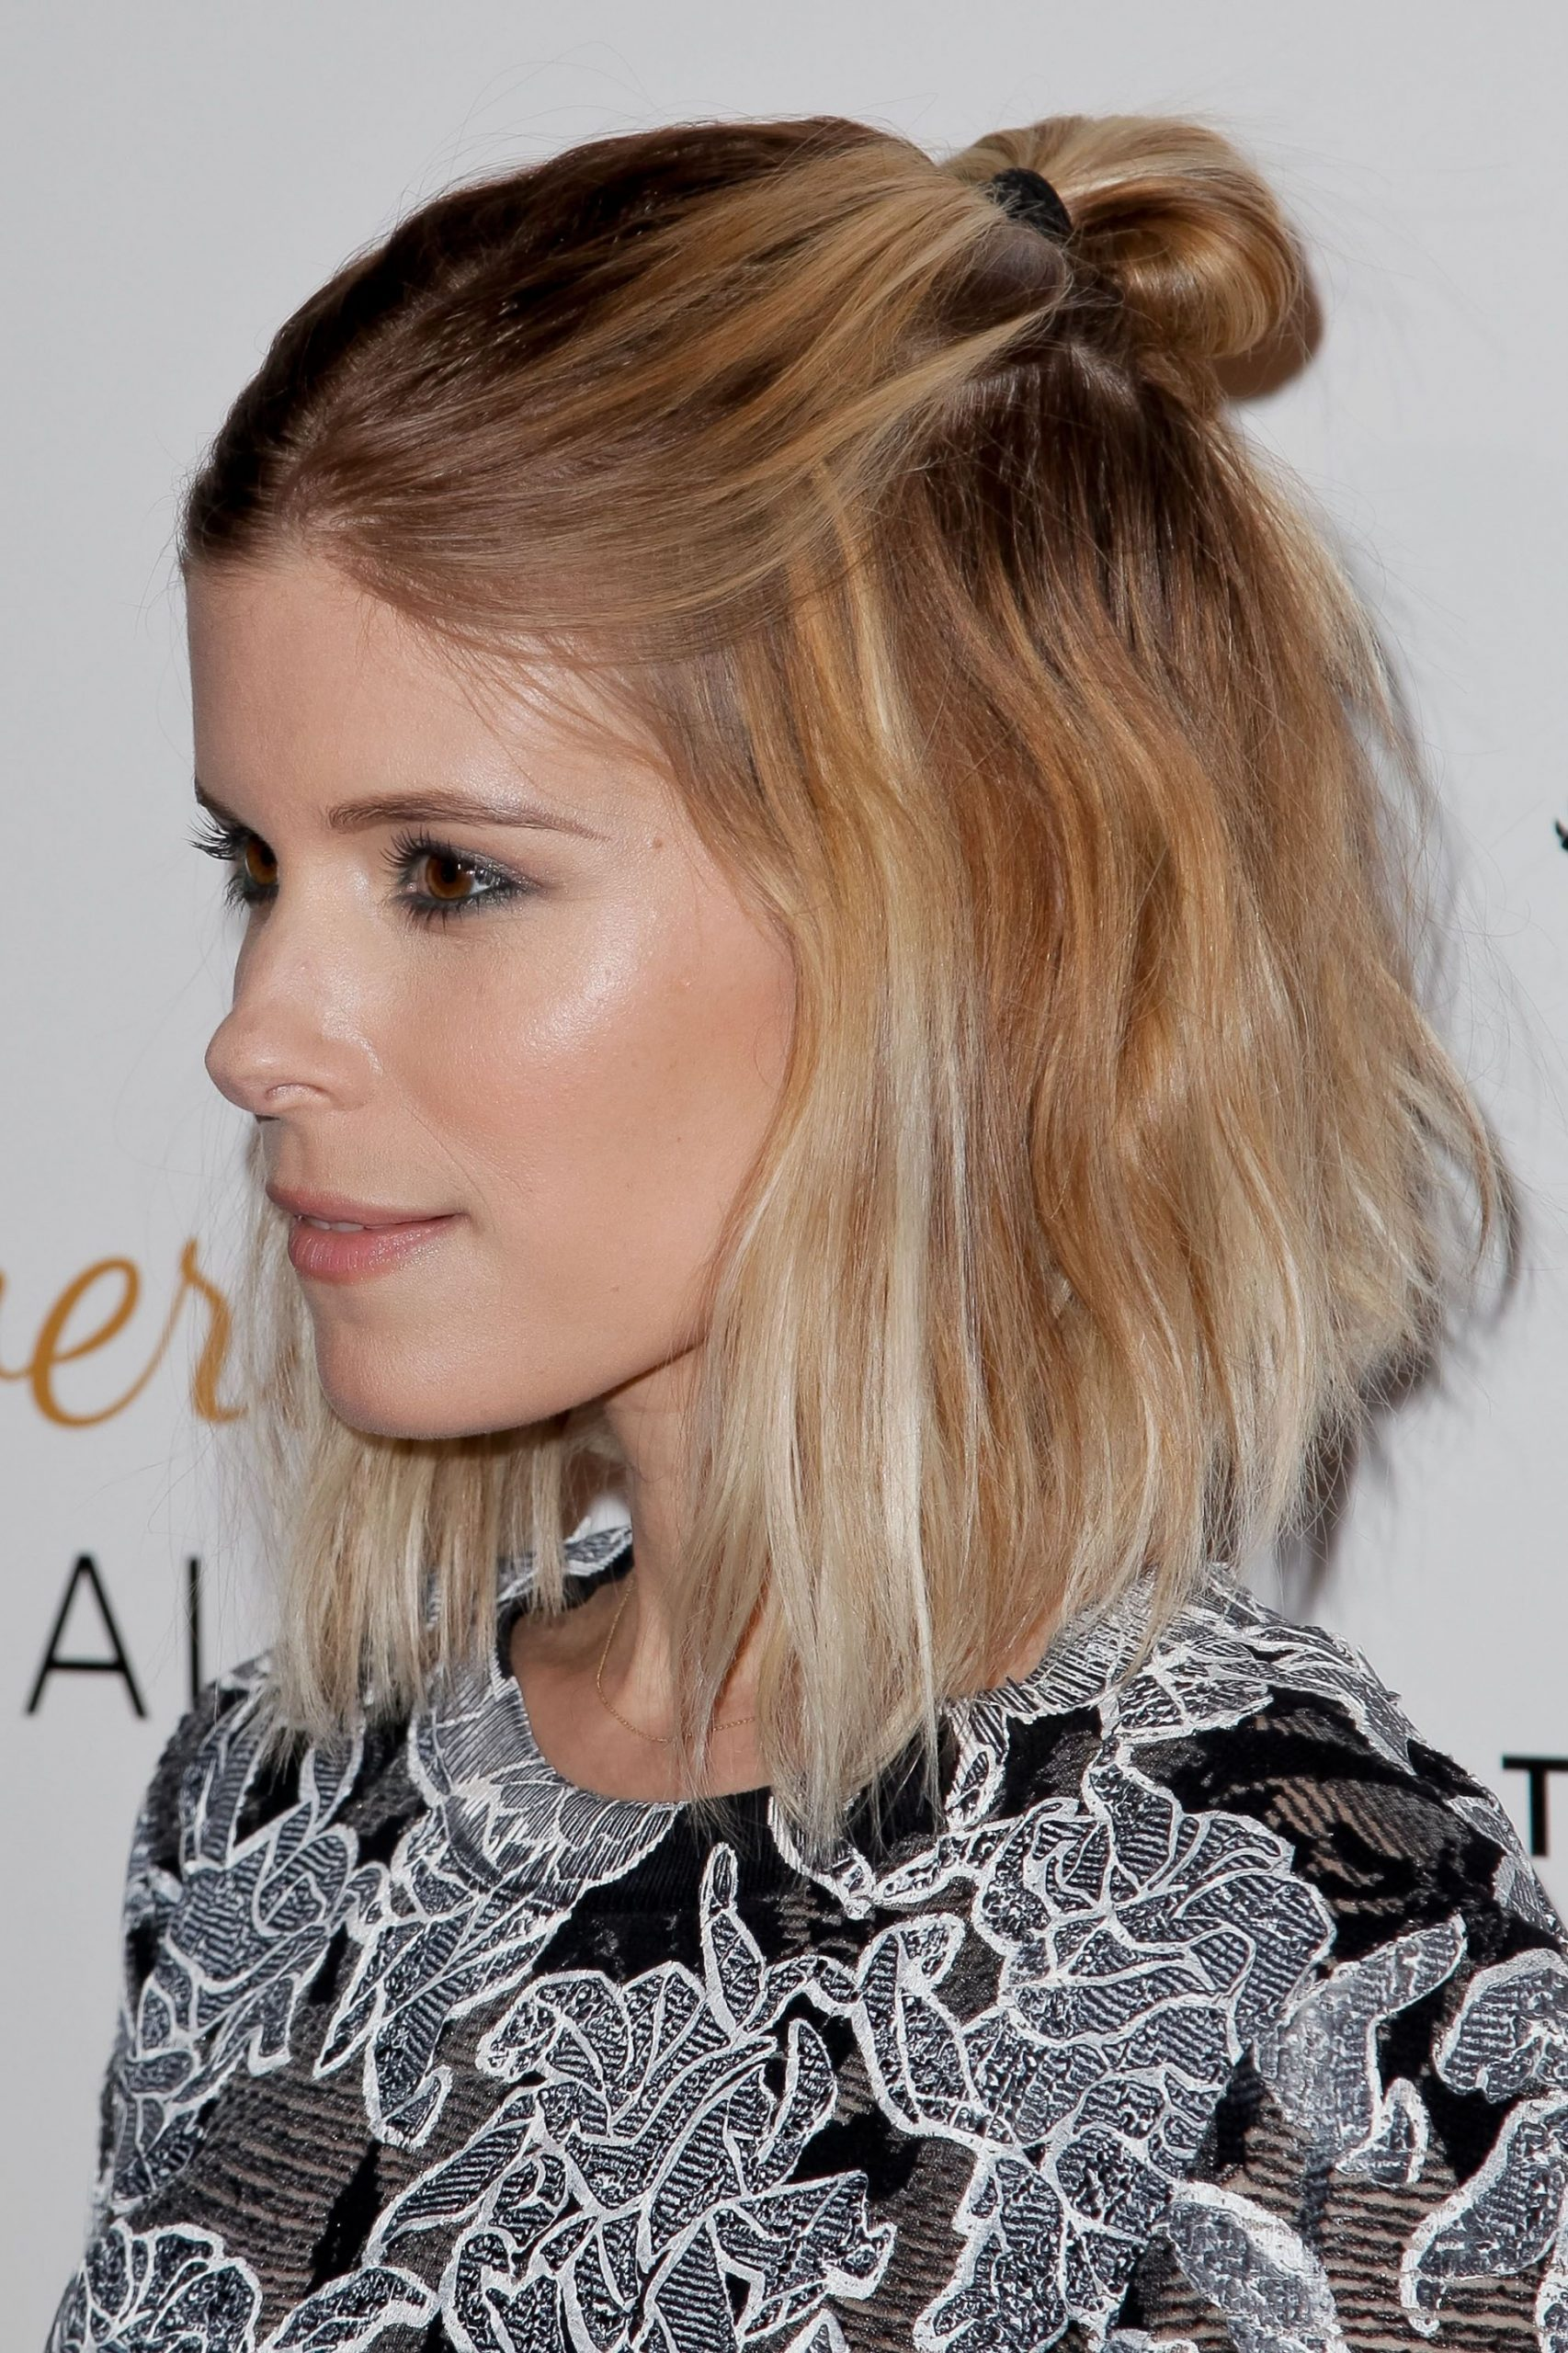 12 Best Hairstyles For Thin Hair Haircuts For Women With Fine Or Best Hairstyles For Long Thin Hair